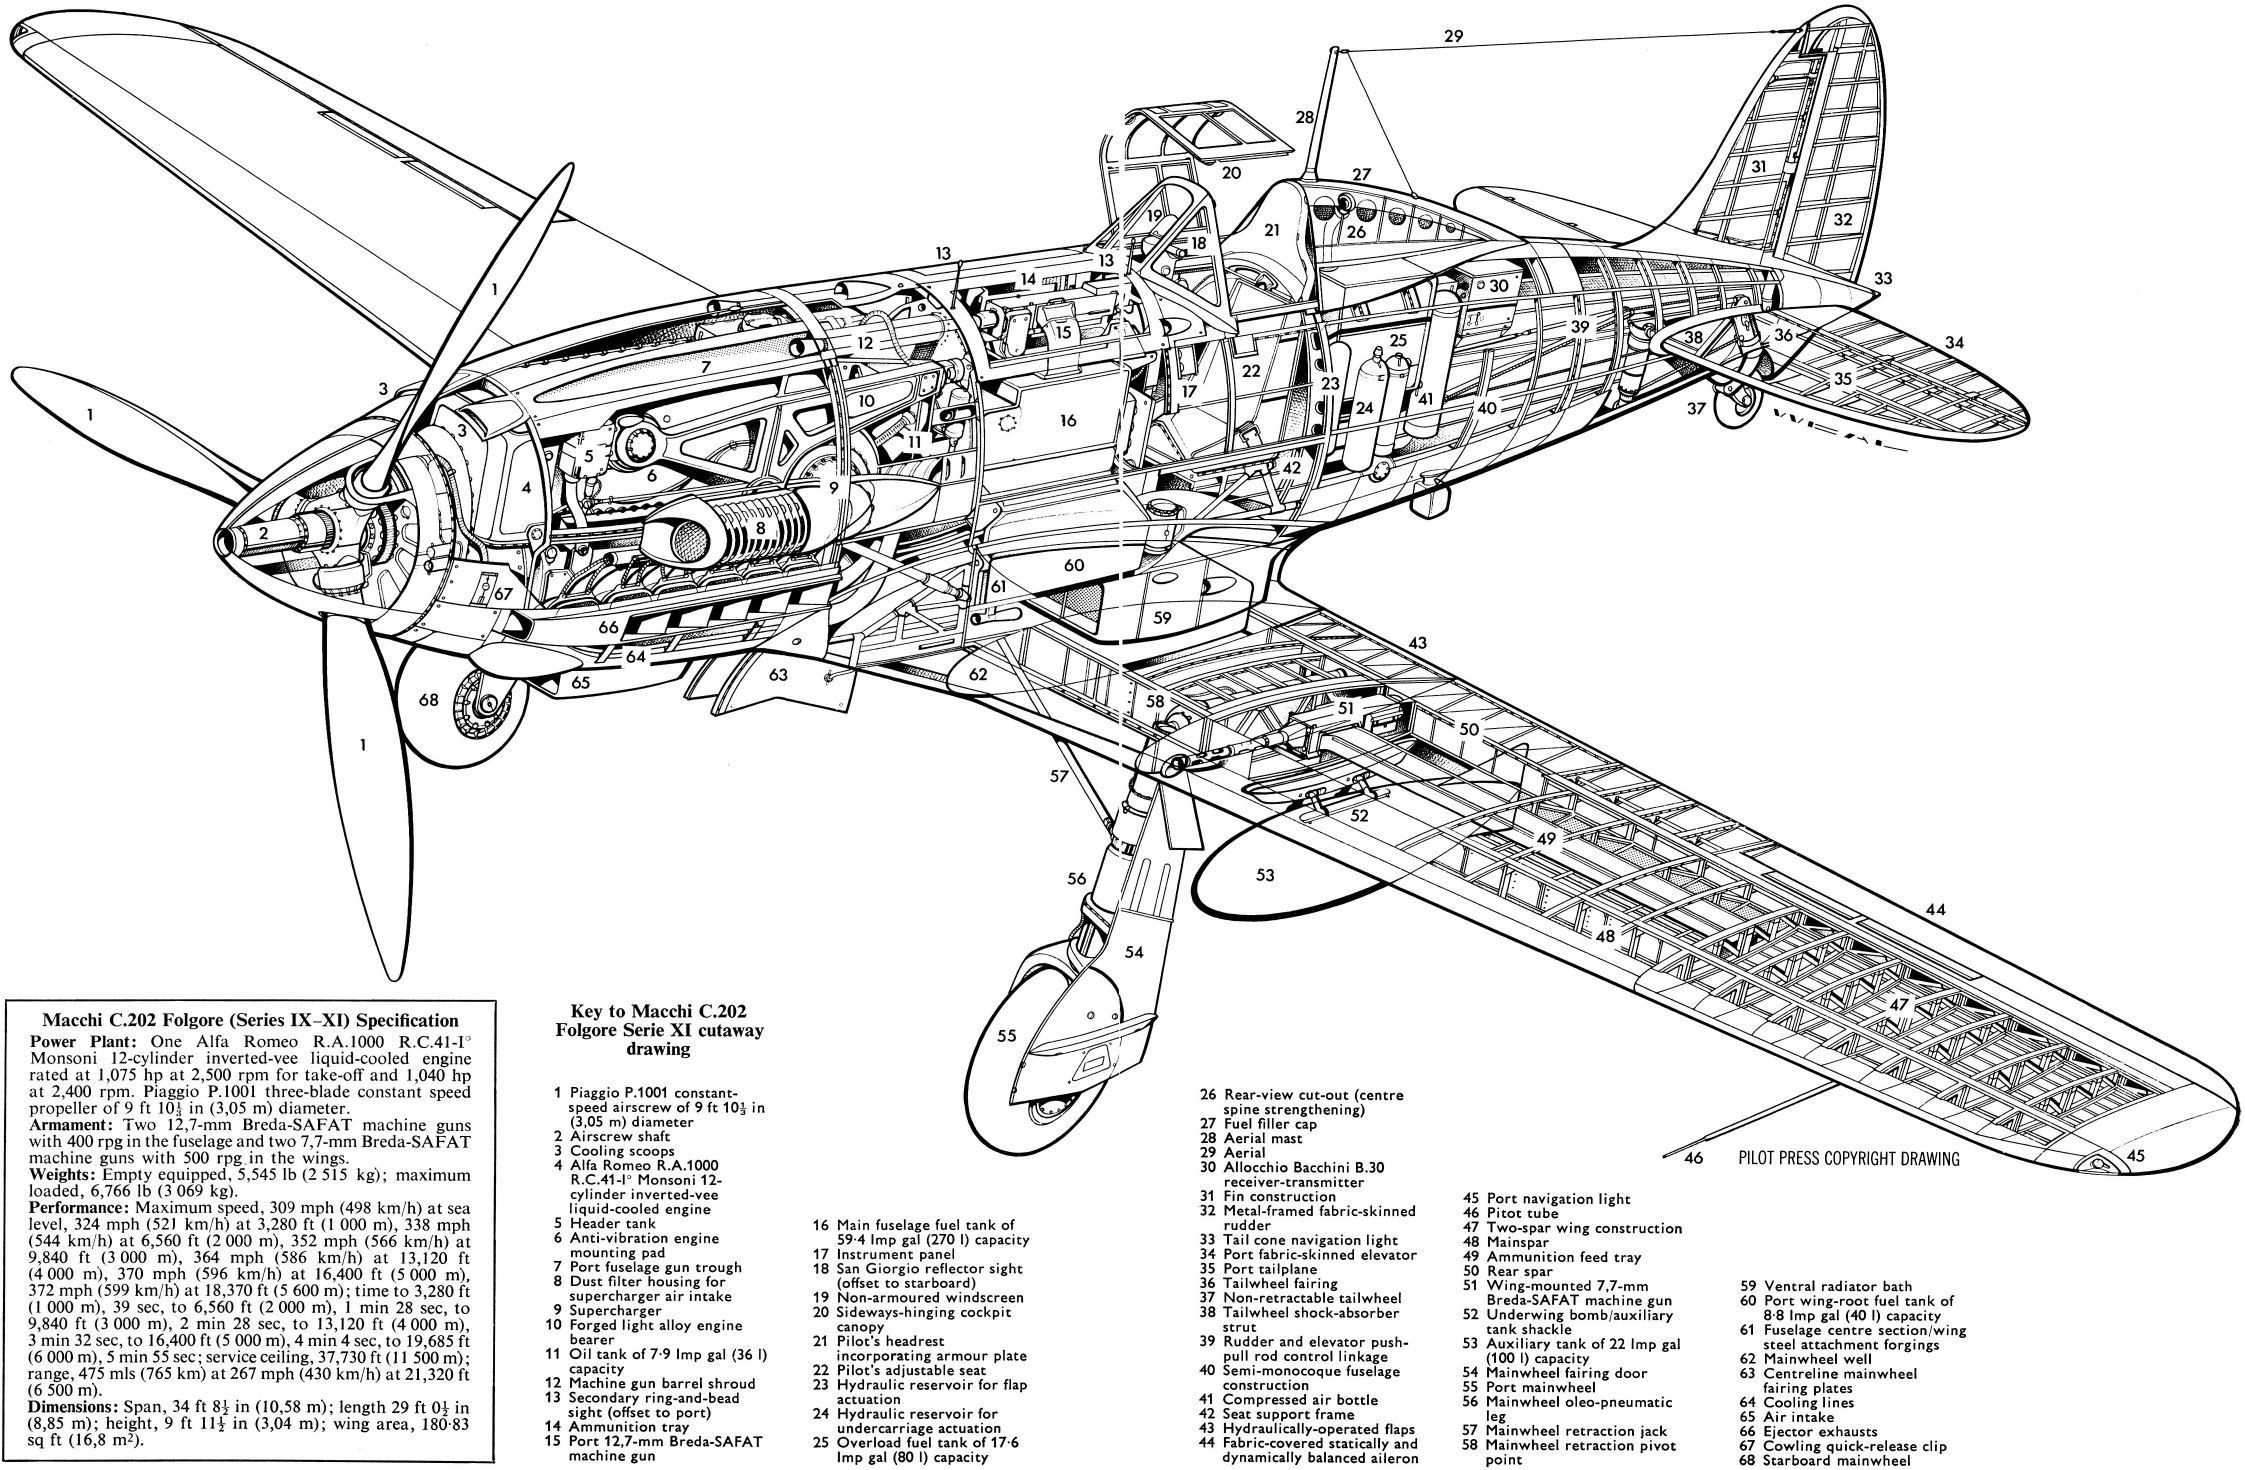 Macchi C202 Folgore Series Ix Xi Cutaways Aircraft Aviation Important Parts Of An Airplane And What They Do